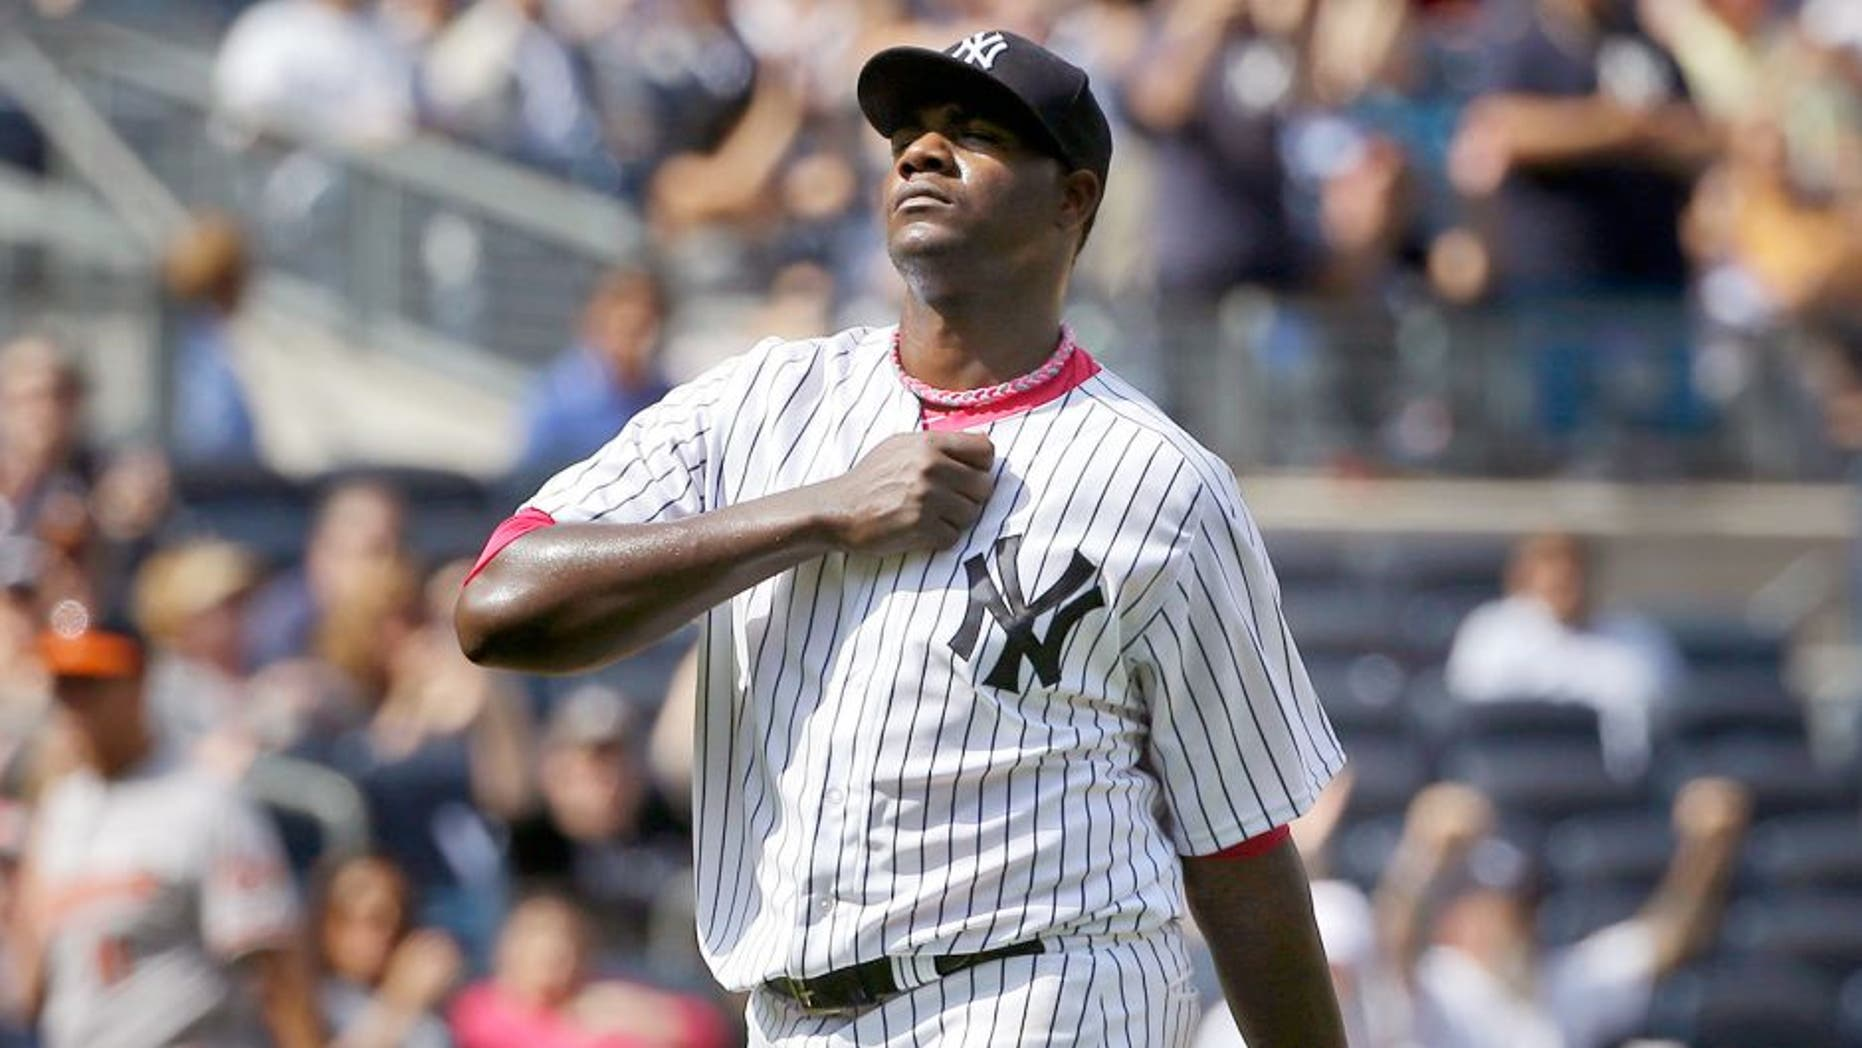 New York Yankees starting pitcher Michael Pineda reacts after striking out Baltimore Orioles' Ryan Flaherty during the seventh inning of the baseball game at Yankee Stadium, Sunday, May 10, 2015, in New York. (AP Photo/Seth Wenig)